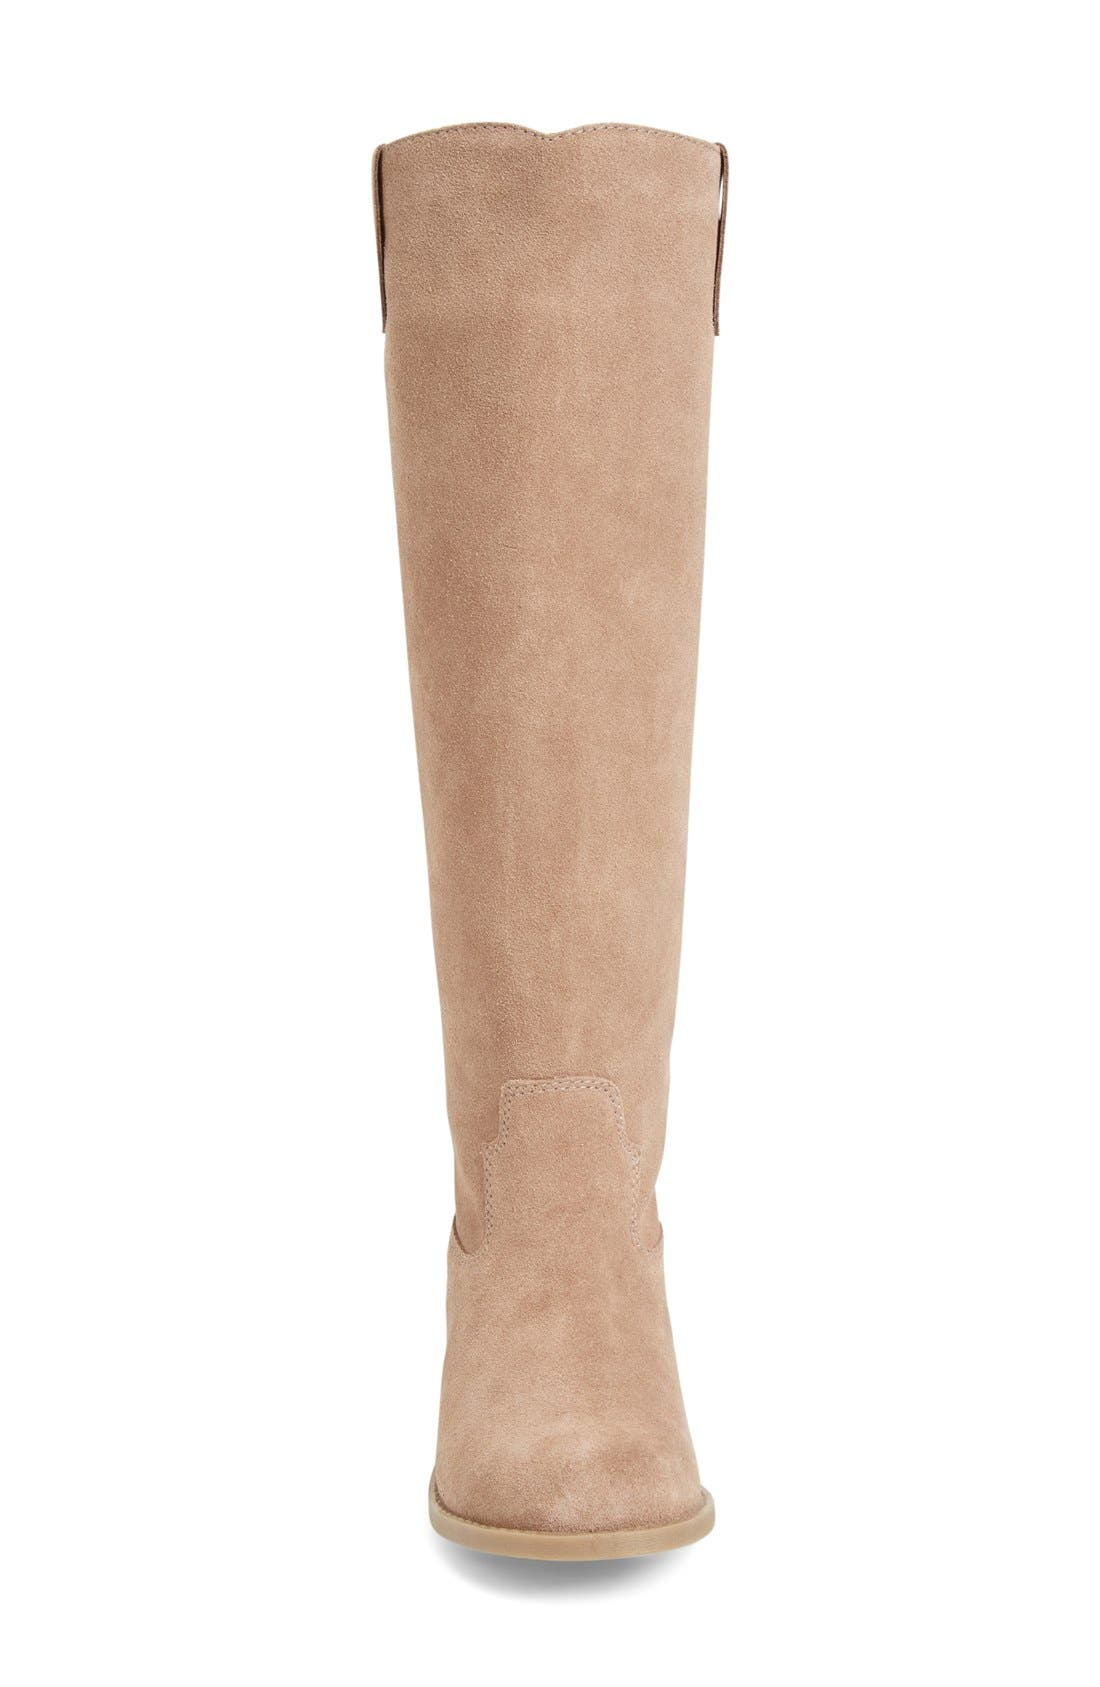 Hawn Knee High Boot,                             Alternate thumbnail 12, color,